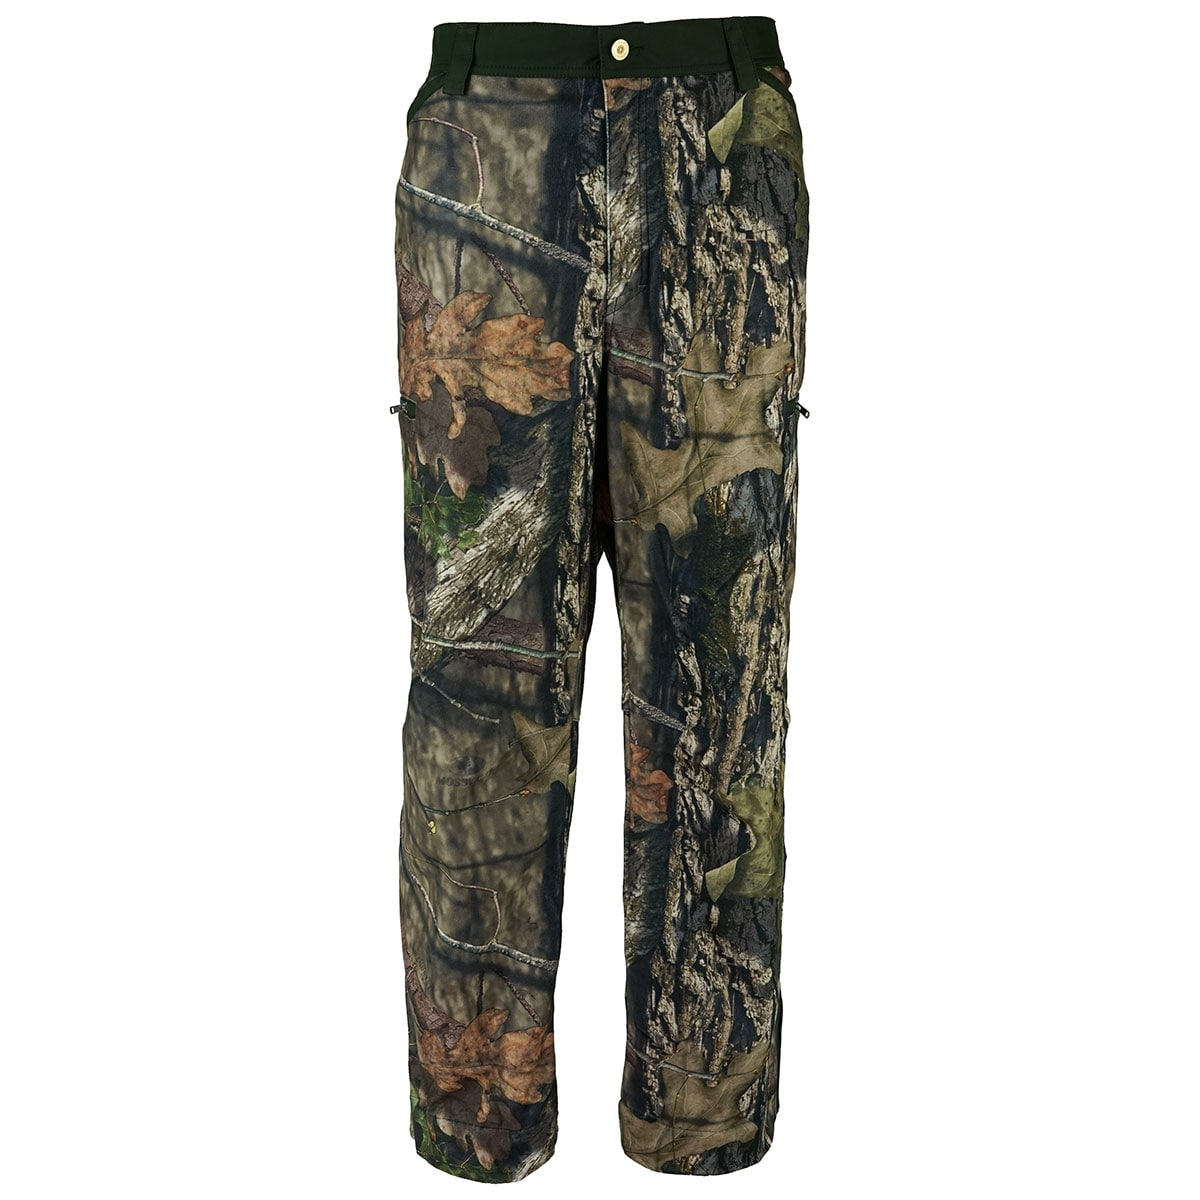 52d9511d7dbb Shop Under Armour Men s UA ColdGear Infrared Scent Control Rut Pants -  realtree velocity - 44 - Free Shipping Today - Overstock.com - 23485306